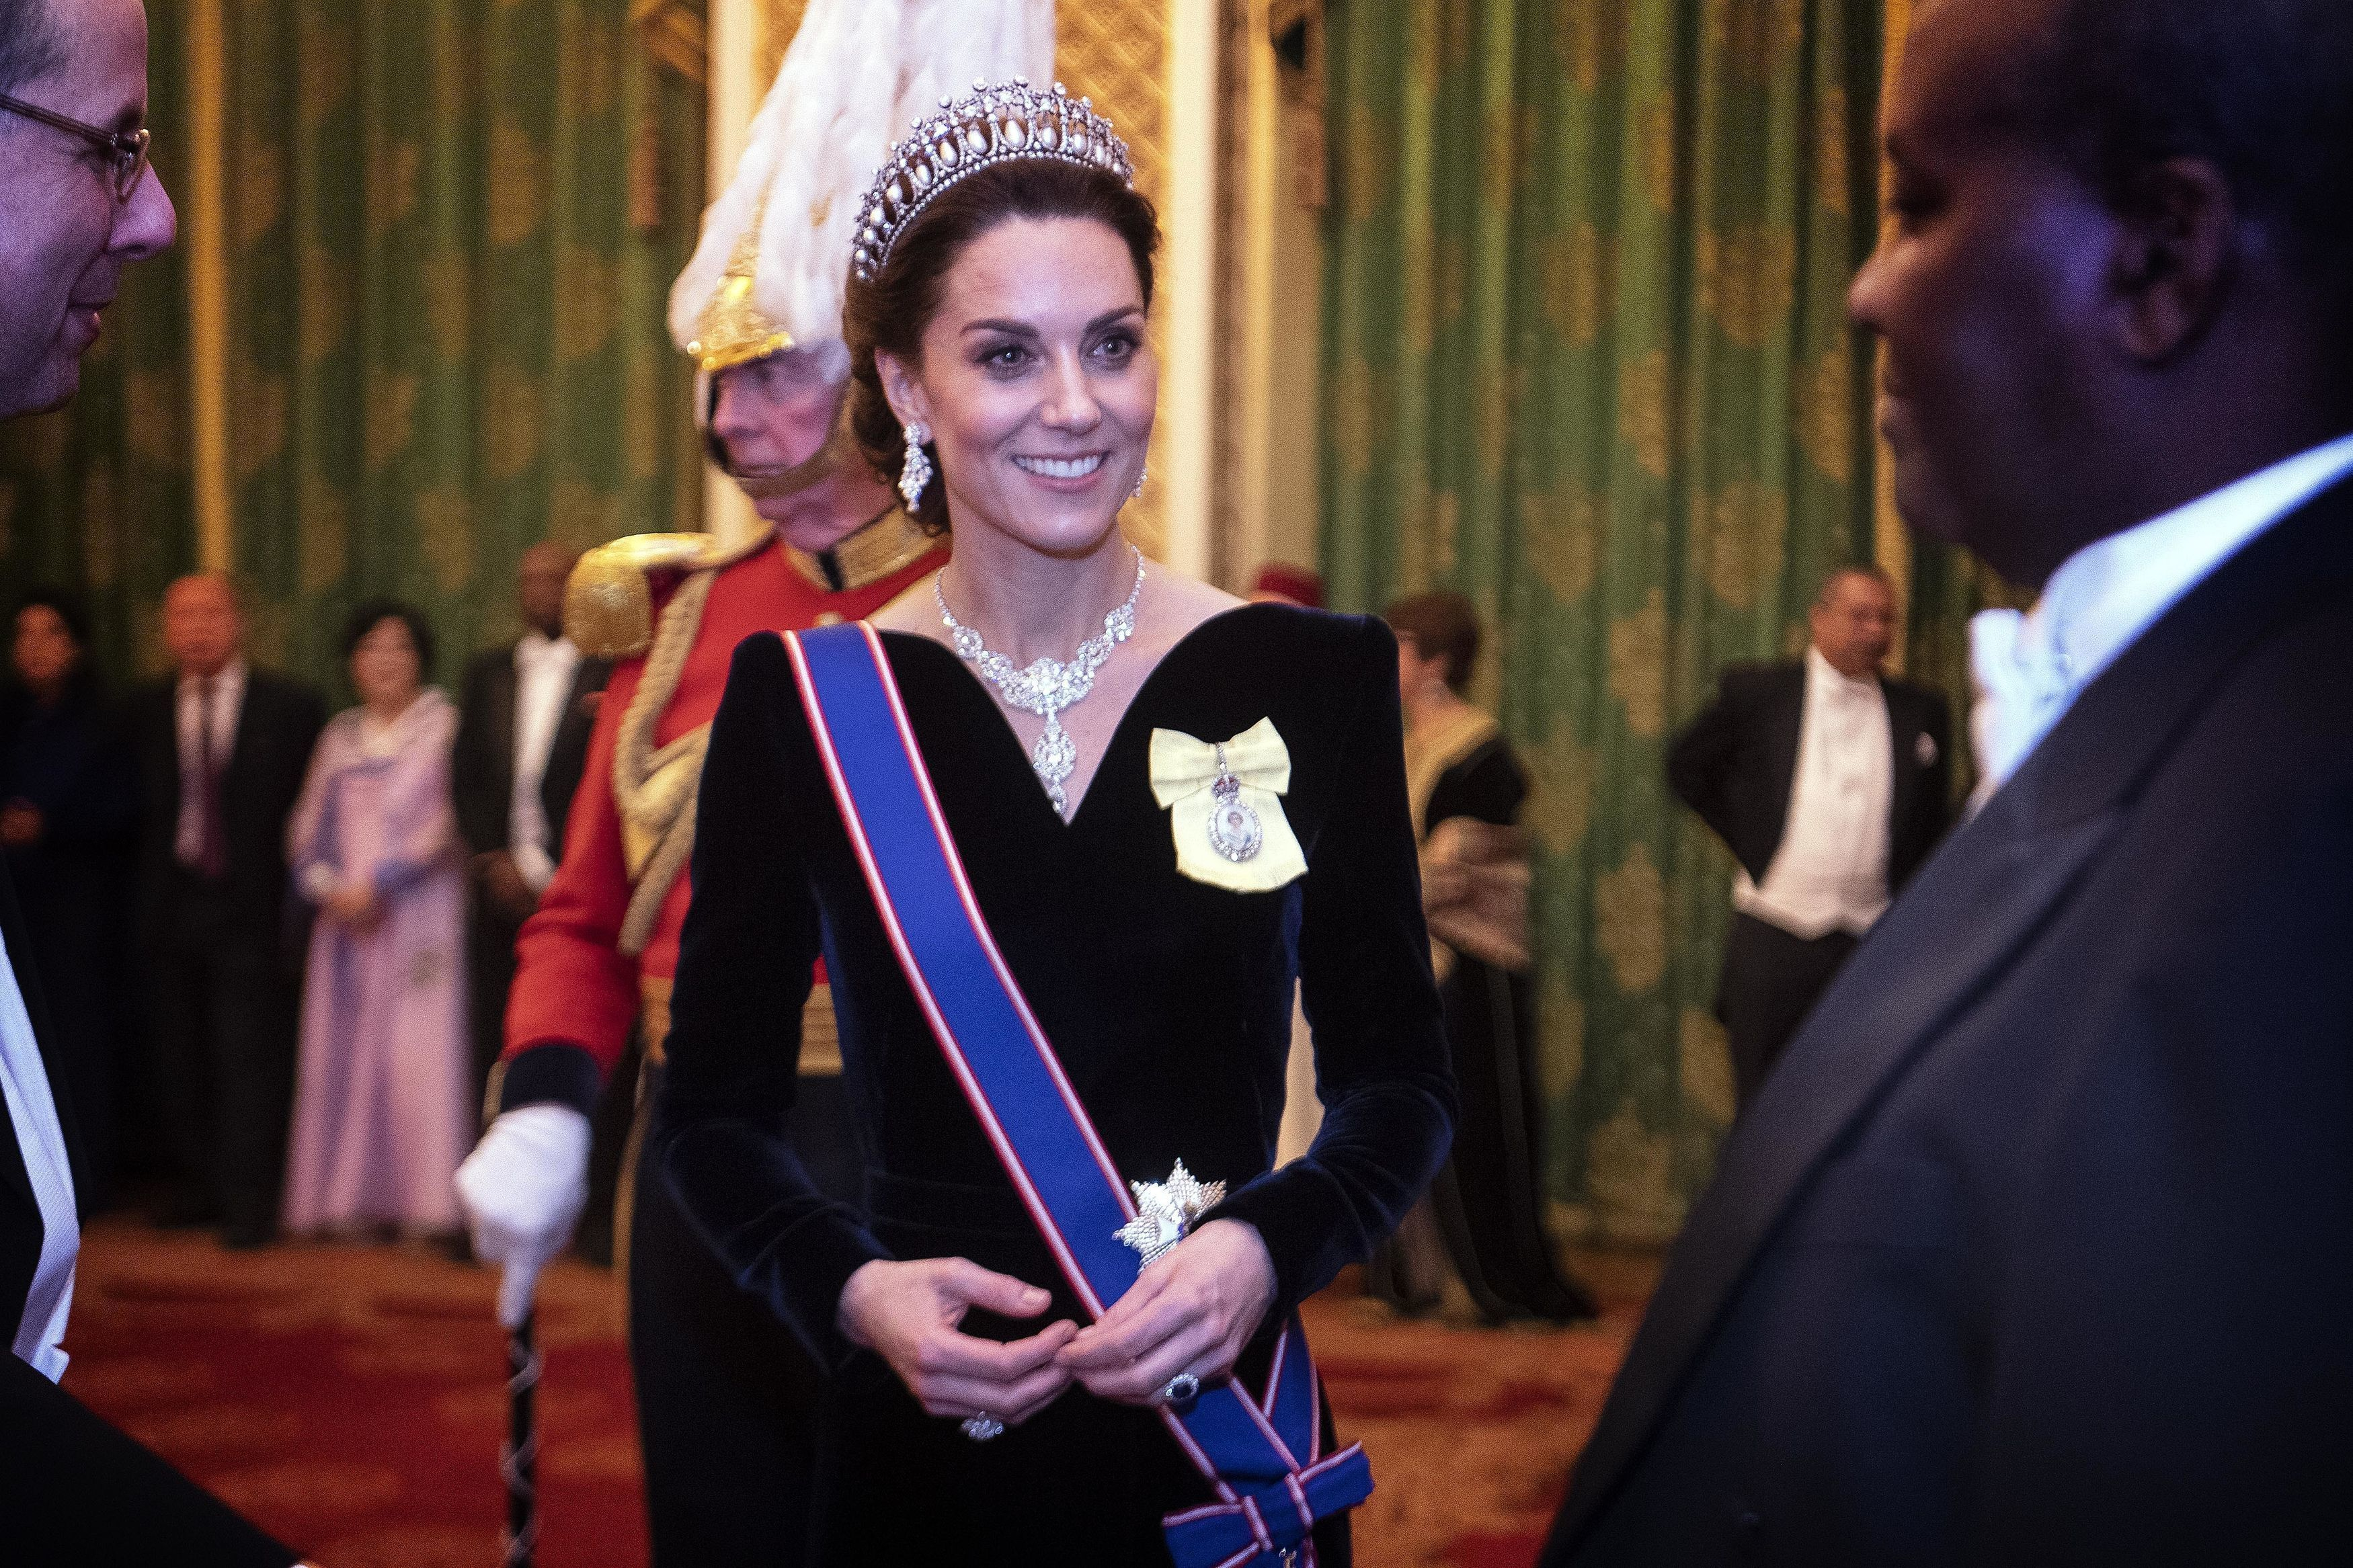 Kate Middleton Pays Tribute To Princess Diana By Wearing Her Favourite Cambridge Lover's Knot Tiara